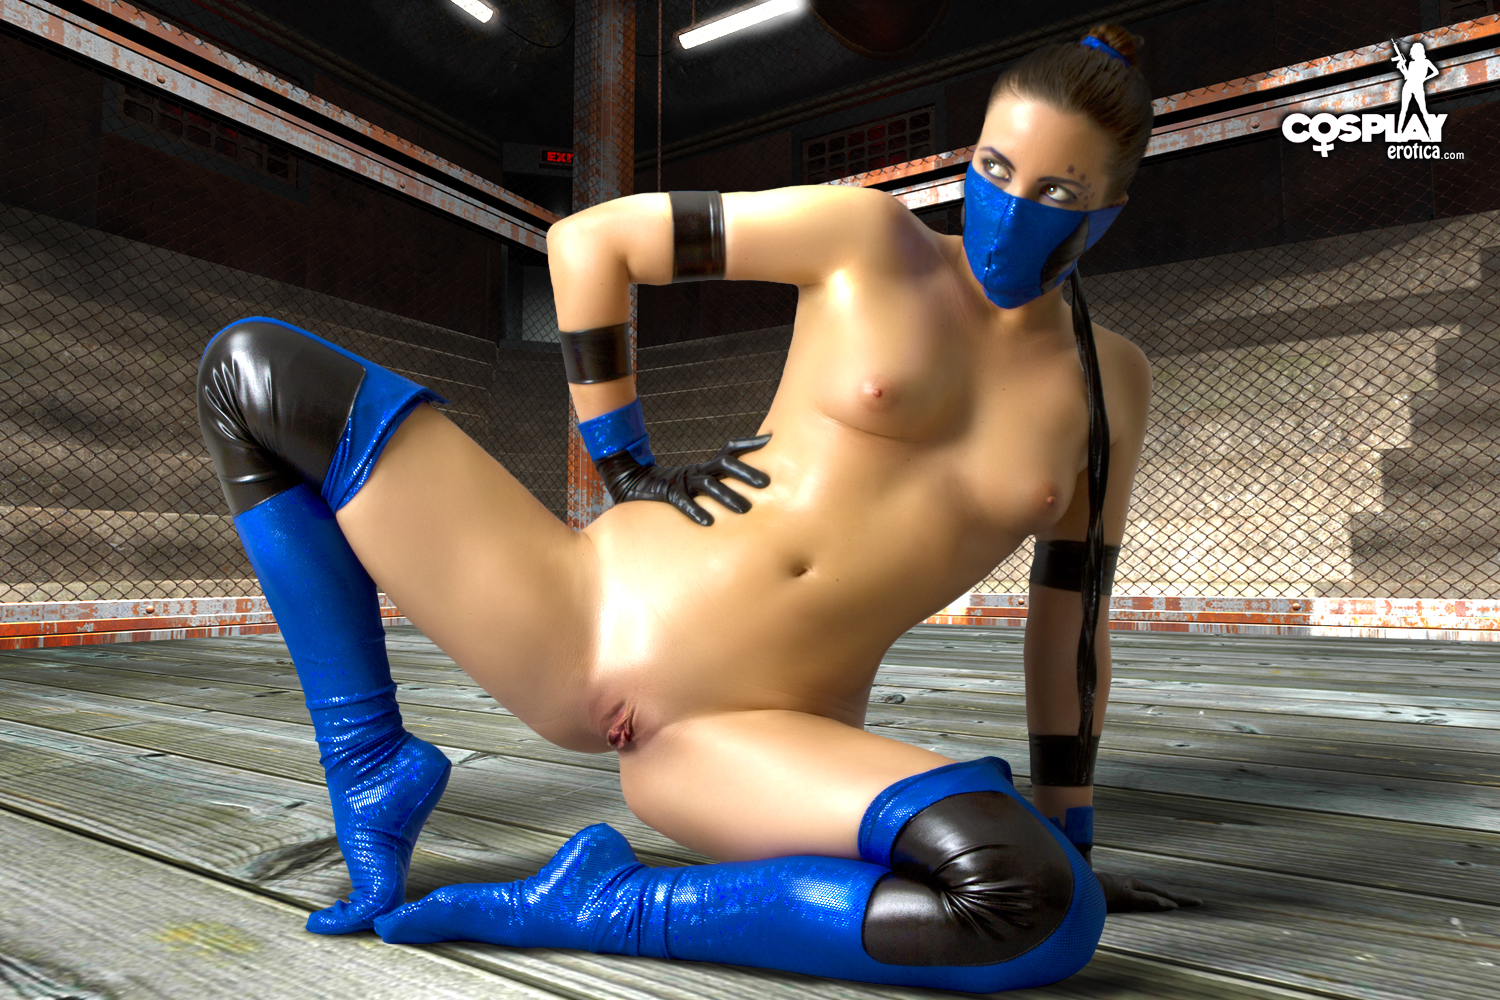 Mortal kombat nude nakedmod 2013 gameplay download erotic toons